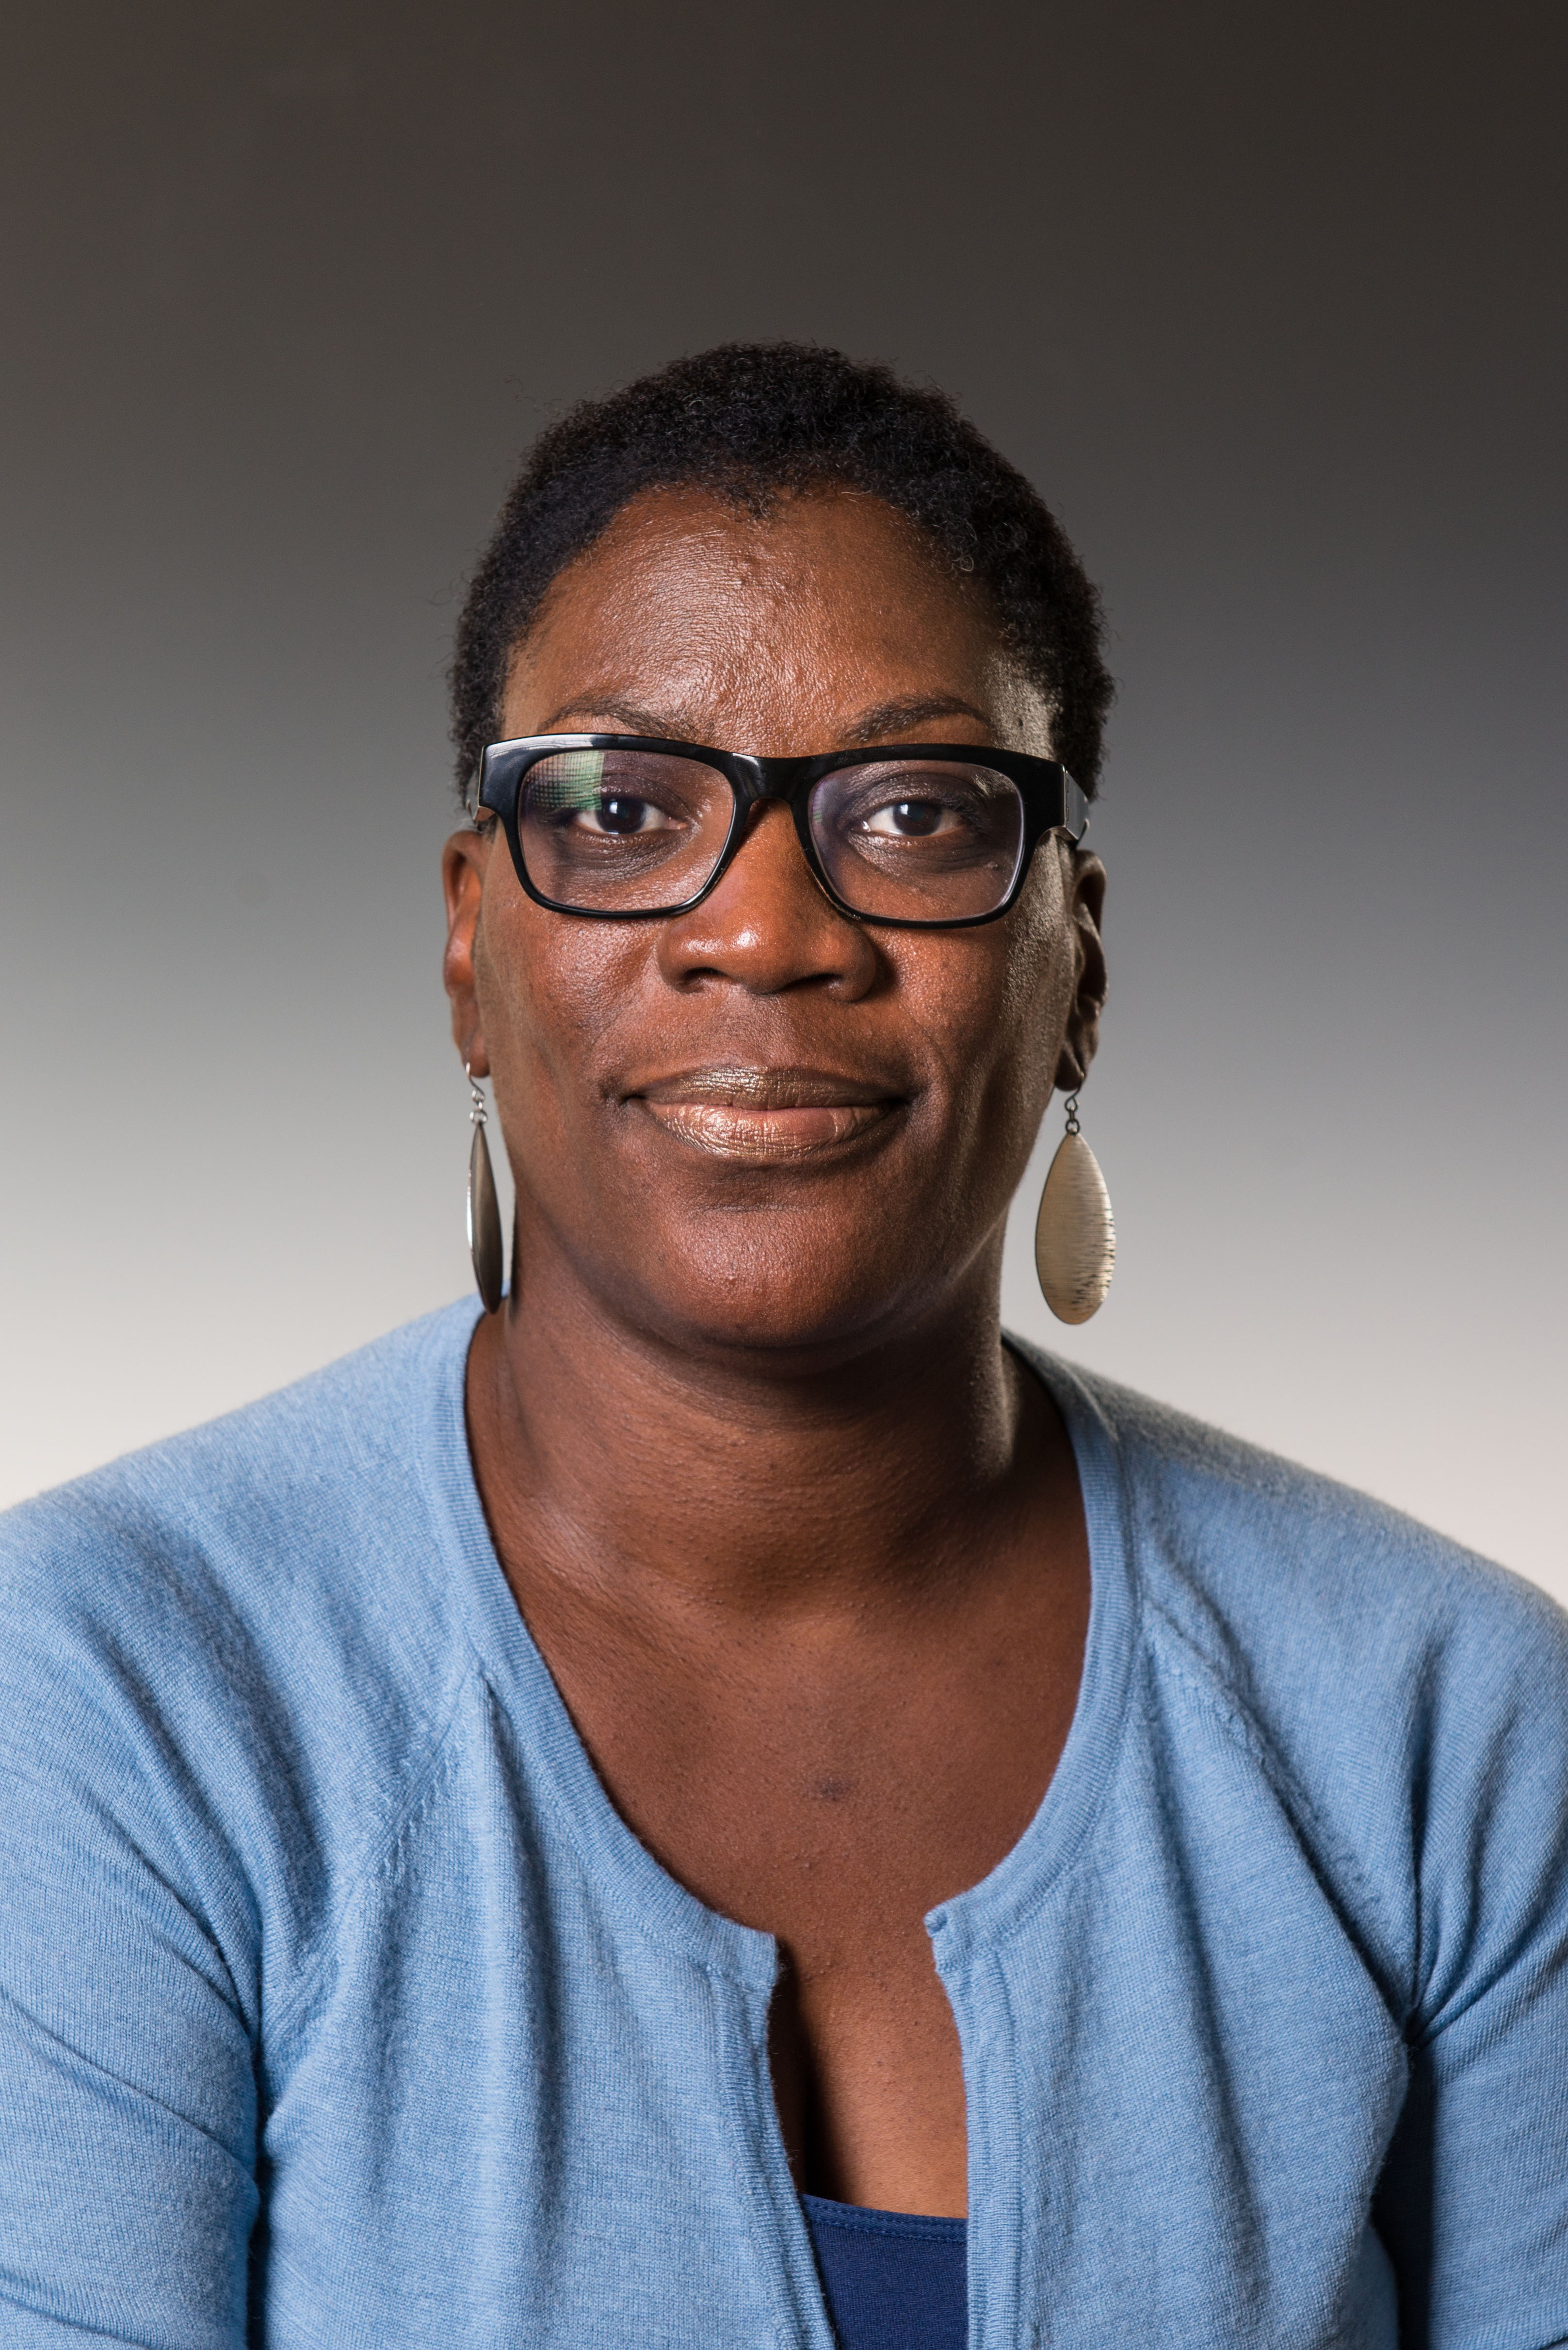 New Faculty Communities Of Learning Tamuc: Announcing New Faculty- Beginning Fall 2014